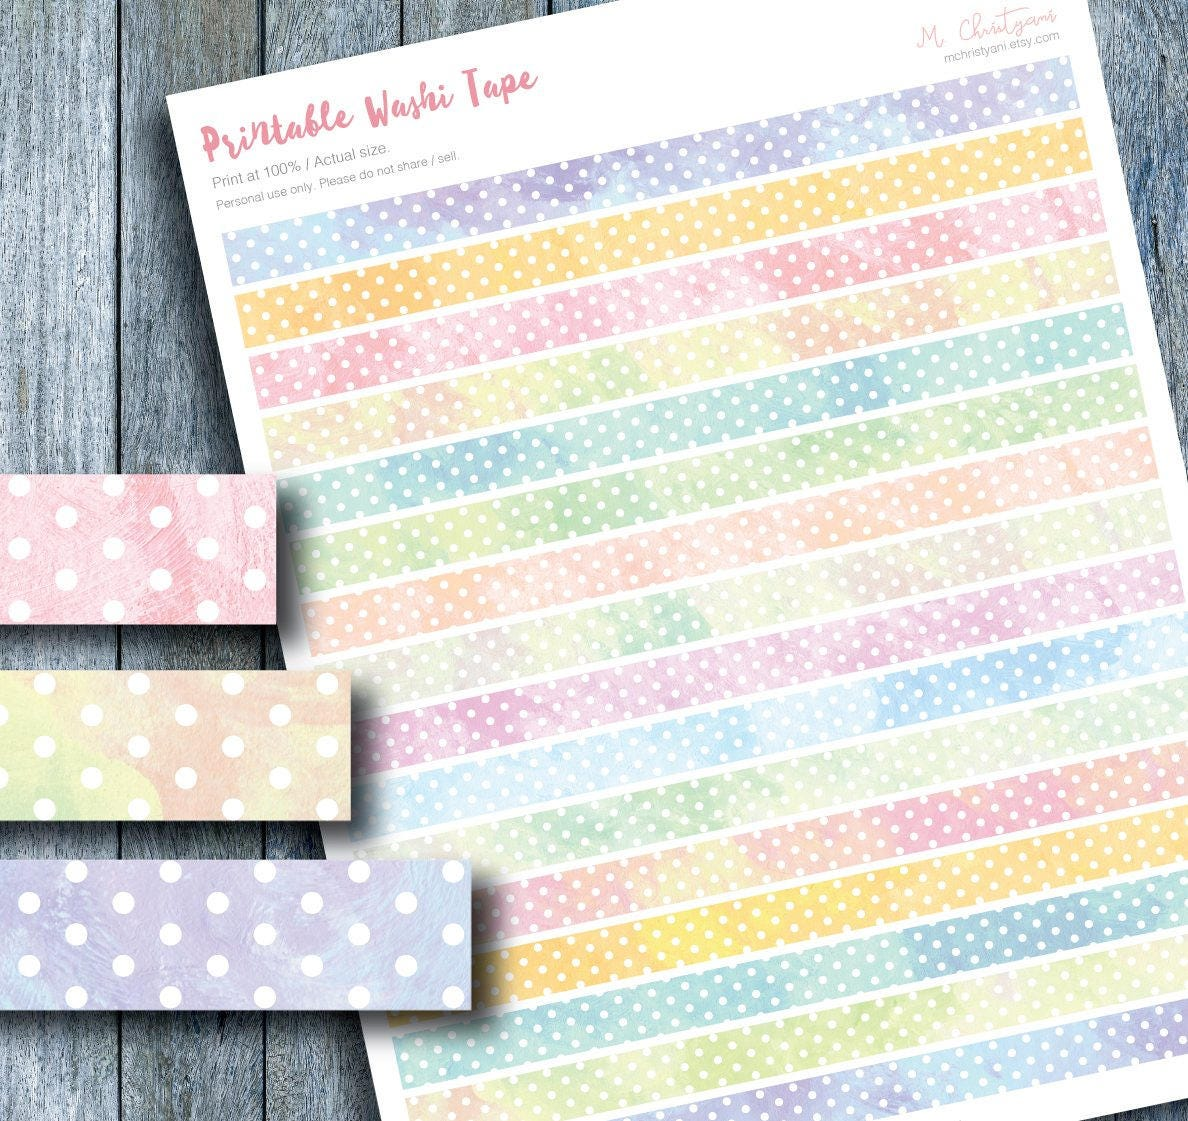 graphic about Free Printable Washi Tape identified as Hand Painted Watercolor Polkadots Printable Washi Tape Stickers for Planner, Erin Condren, Planner Extras, Pastel Colour Stickers